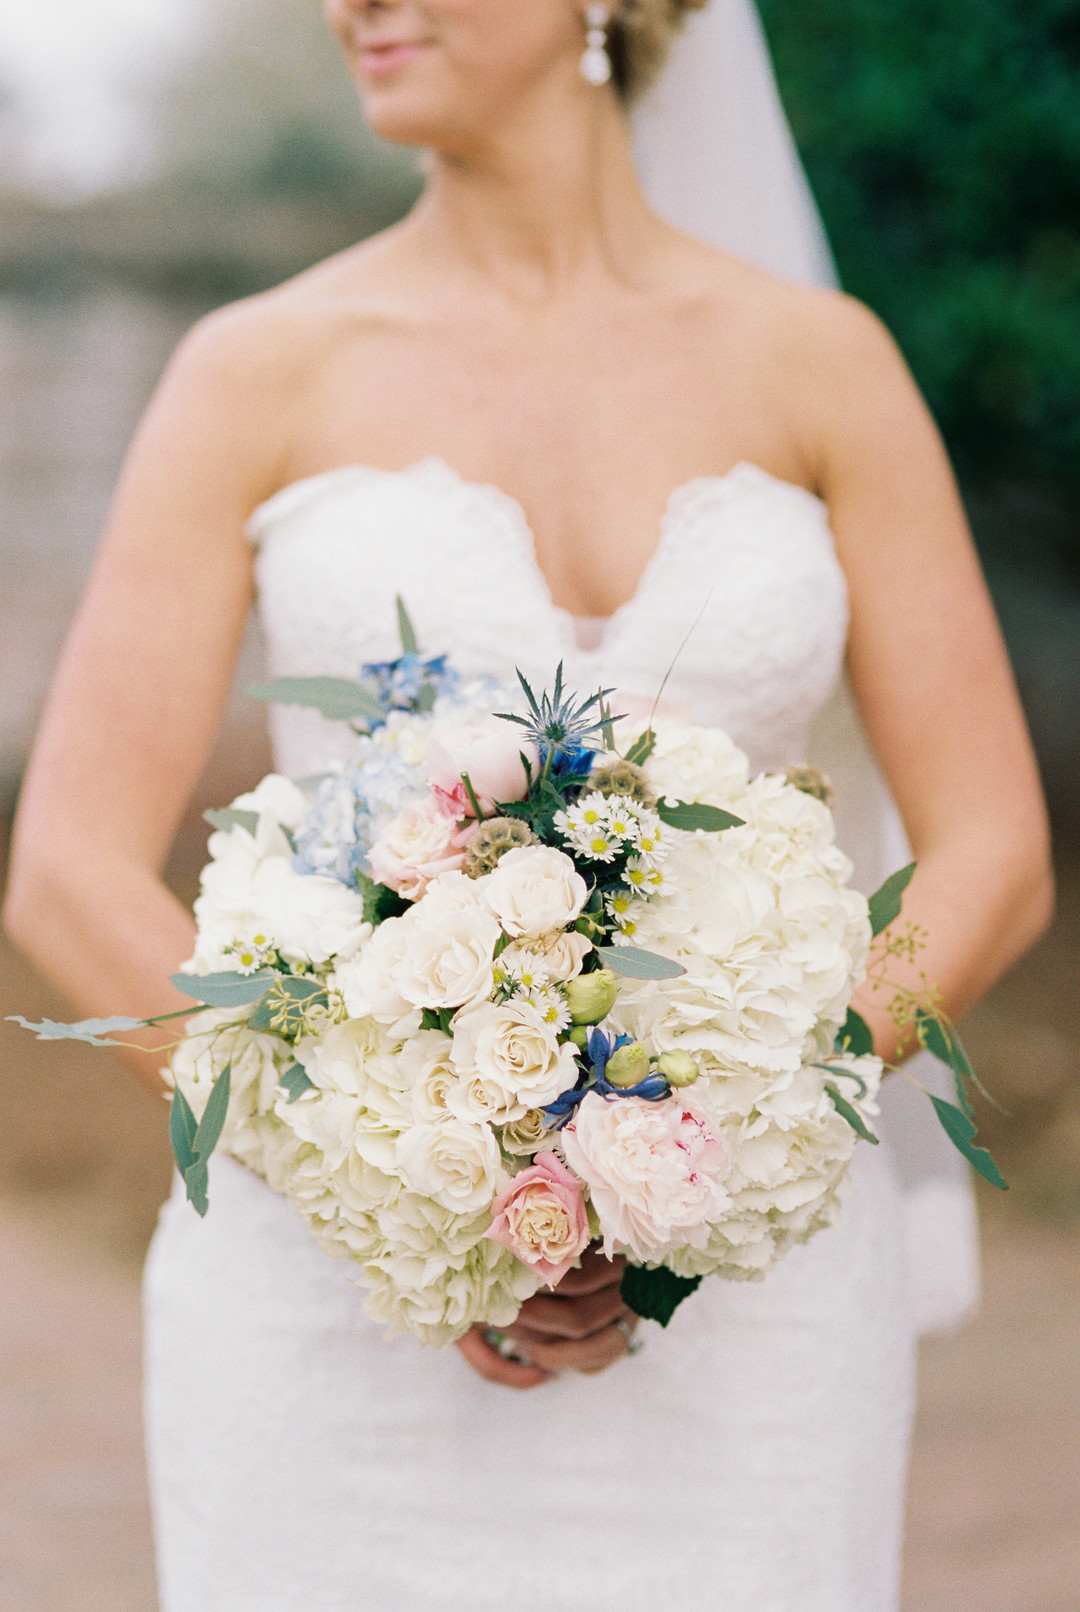 Sheorn_Snijders_CatherineAnnPhotography_catherineannphotographywedding31018carolineericfilm0076_big.jpg